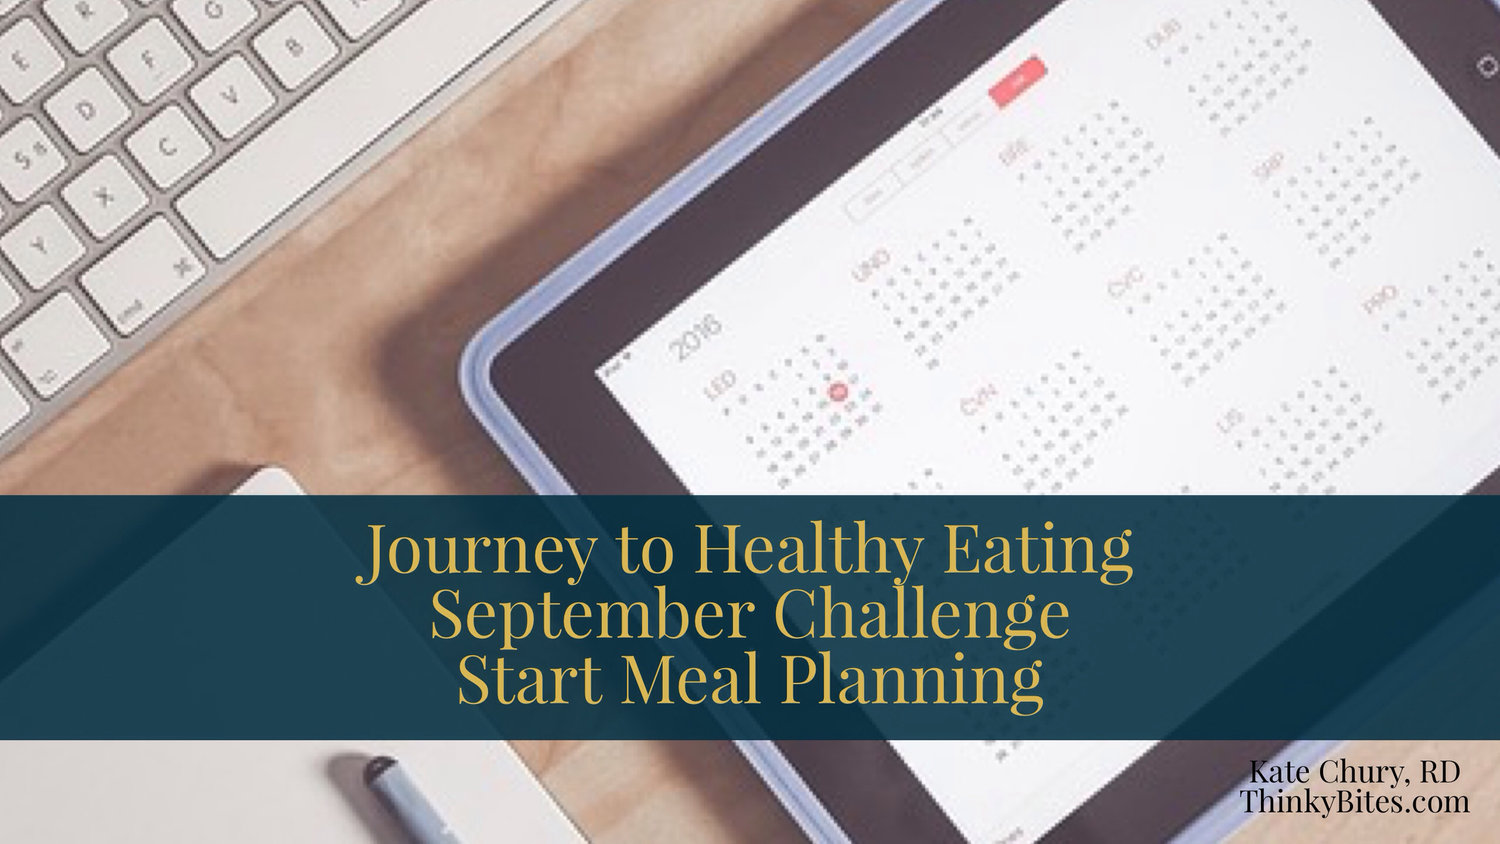 Journey To Healthy Eating Challenge 2017: September Edition